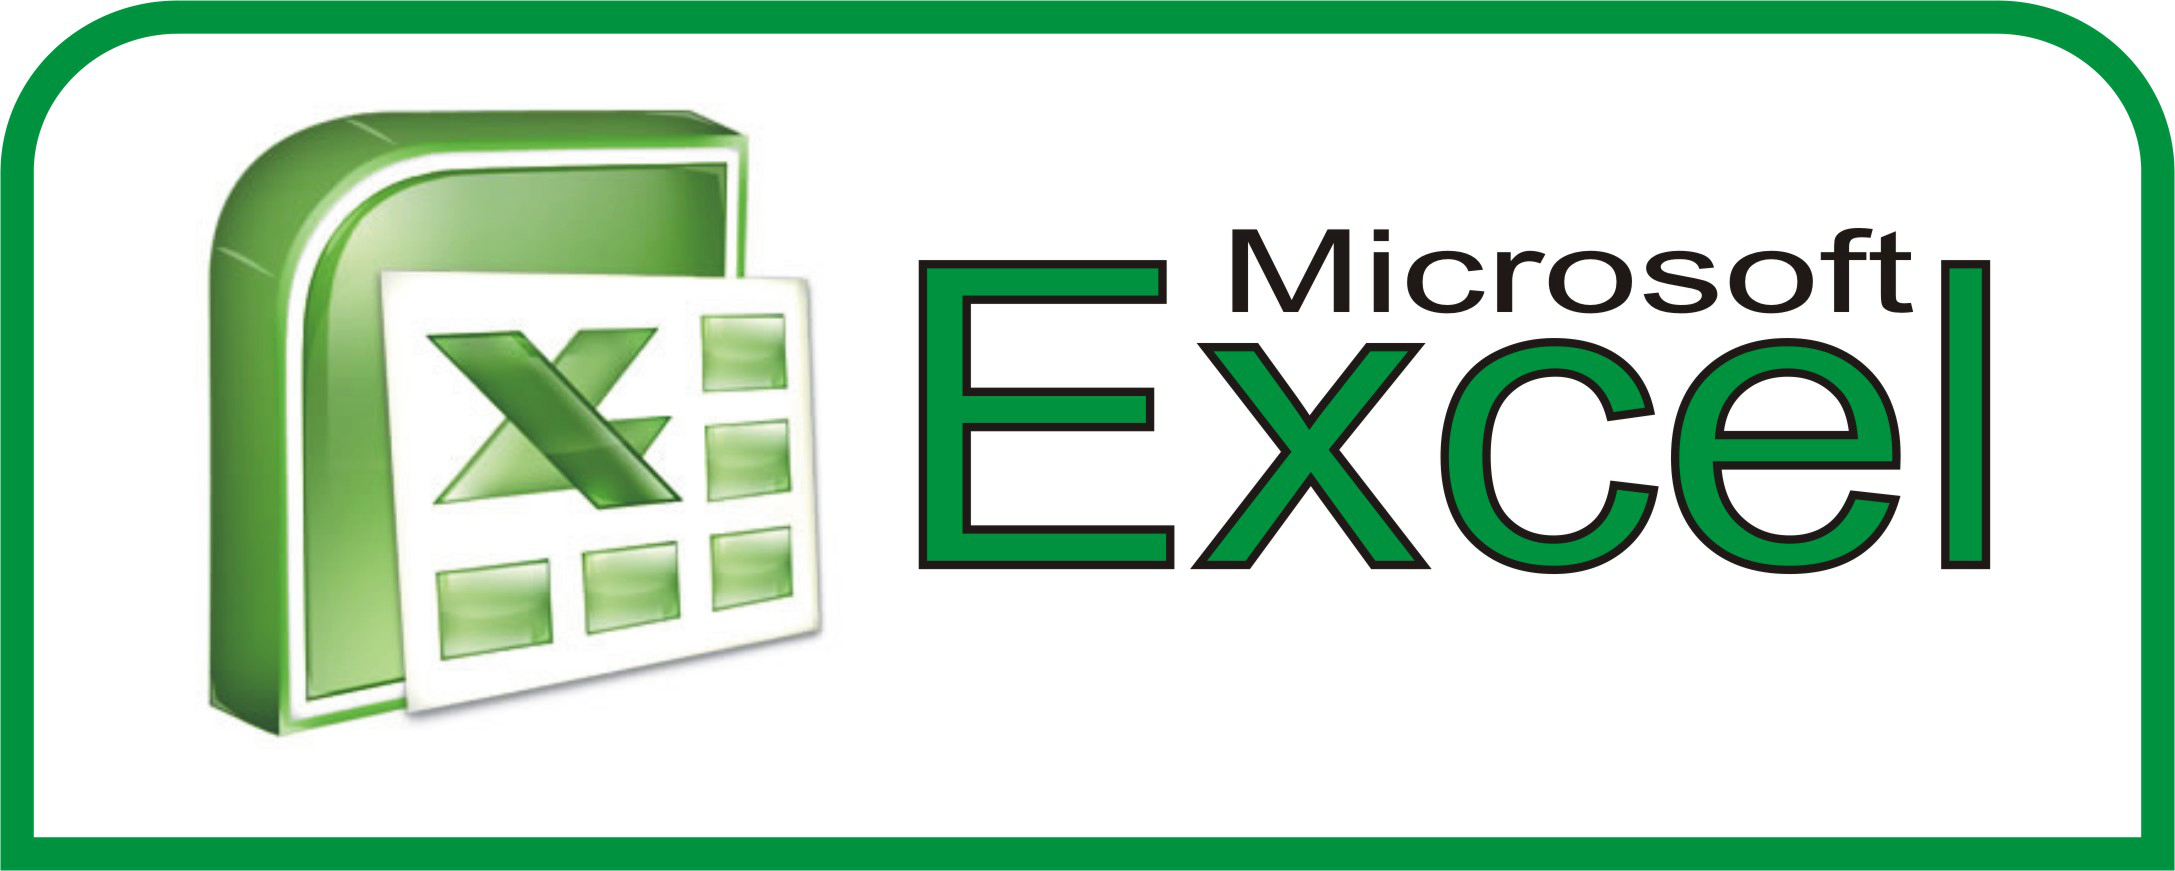 Ediblewildsus  Pretty  Excel Shortcuts You Probably Didnt Know About  Techdissected With Extraordinary Data Analysis Excel Download Besides Excel Find Duplicates Formula Furthermore Rounding Numbers Excel With Adorable Excel Formula If Statement Also Excel Granite Malden Ma In Addition Excel Vlookup Example Different Sheet And Vba Excel Pastespecial As Well As Intro To Excel Macros Additionally Filtering Duplicates In Excel From Techdissectedcom With Ediblewildsus  Extraordinary  Excel Shortcuts You Probably Didnt Know About  Techdissected With Adorable Data Analysis Excel Download Besides Excel Find Duplicates Formula Furthermore Rounding Numbers Excel And Pretty Excel Formula If Statement Also Excel Granite Malden Ma In Addition Excel Vlookup Example Different Sheet From Techdissectedcom